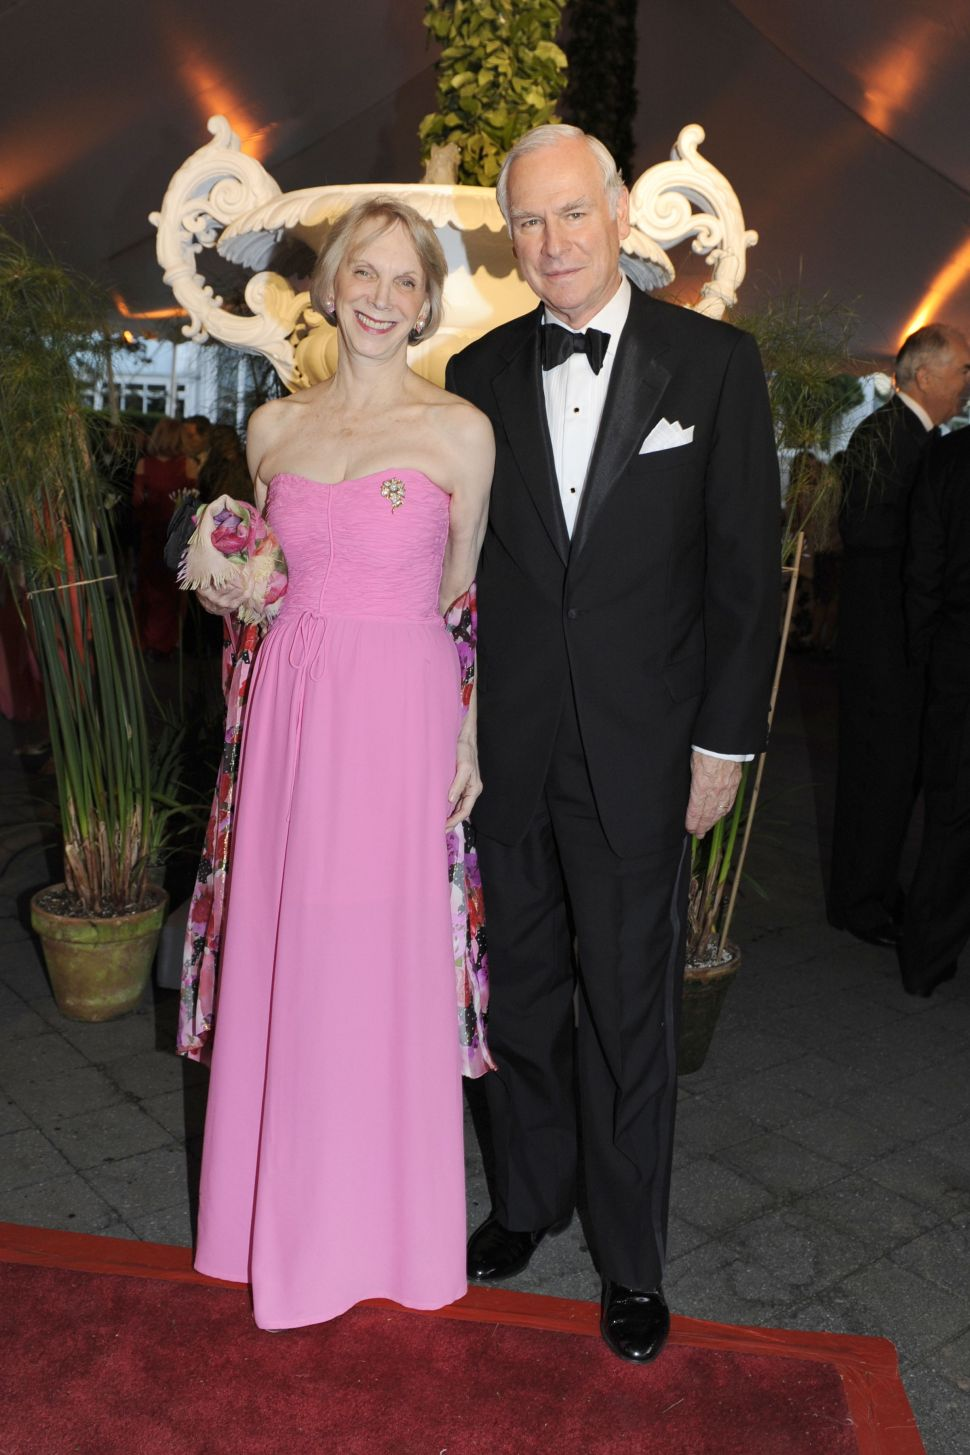 Two Seniors, Please: Ad Exec, Wife Buy Theater Maven's Co-op for $5.5M